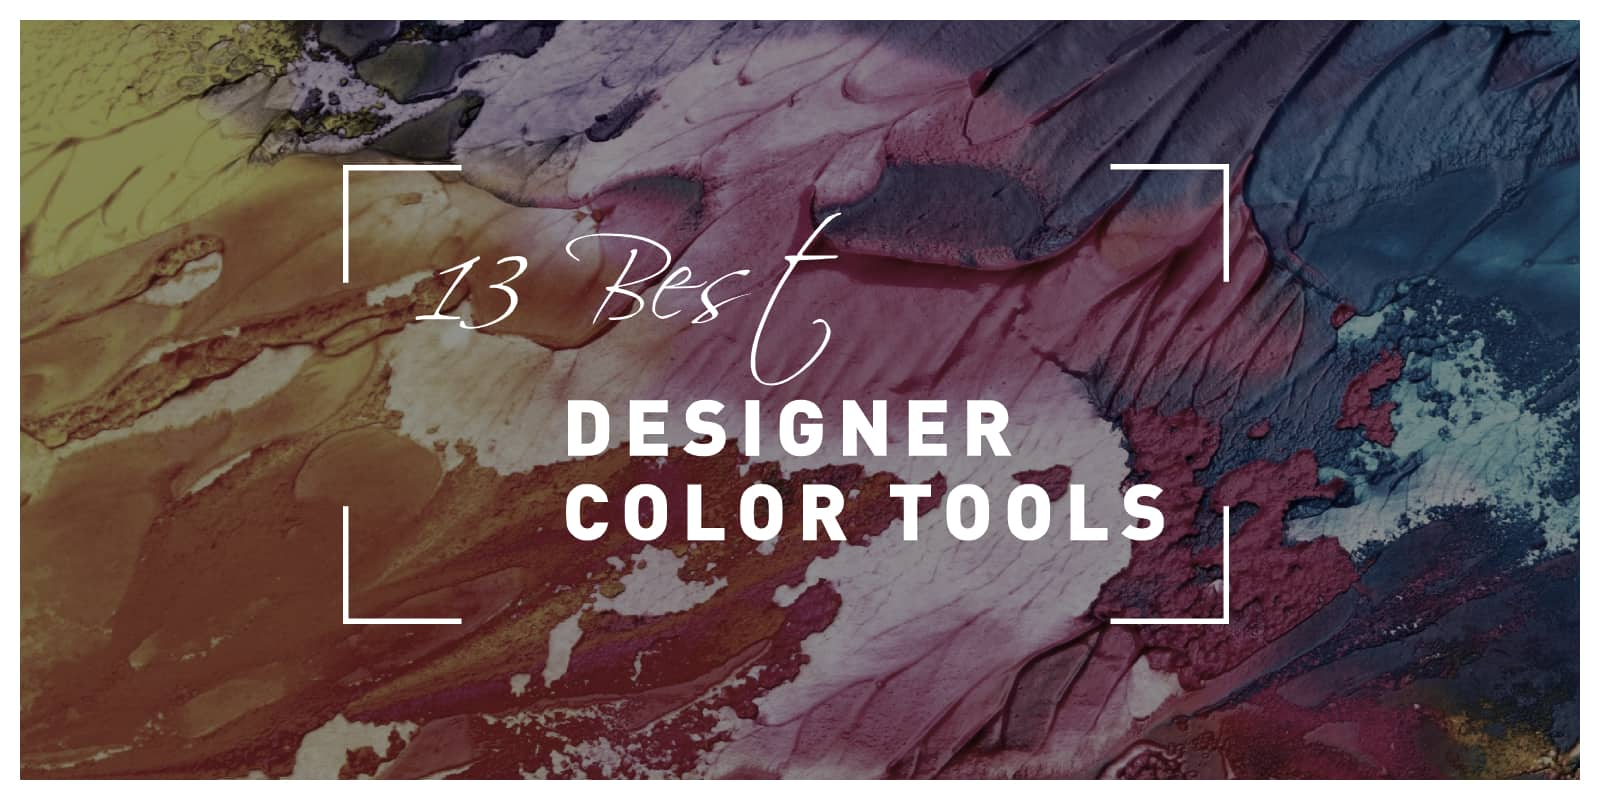 13 Best Color Tools For Designers